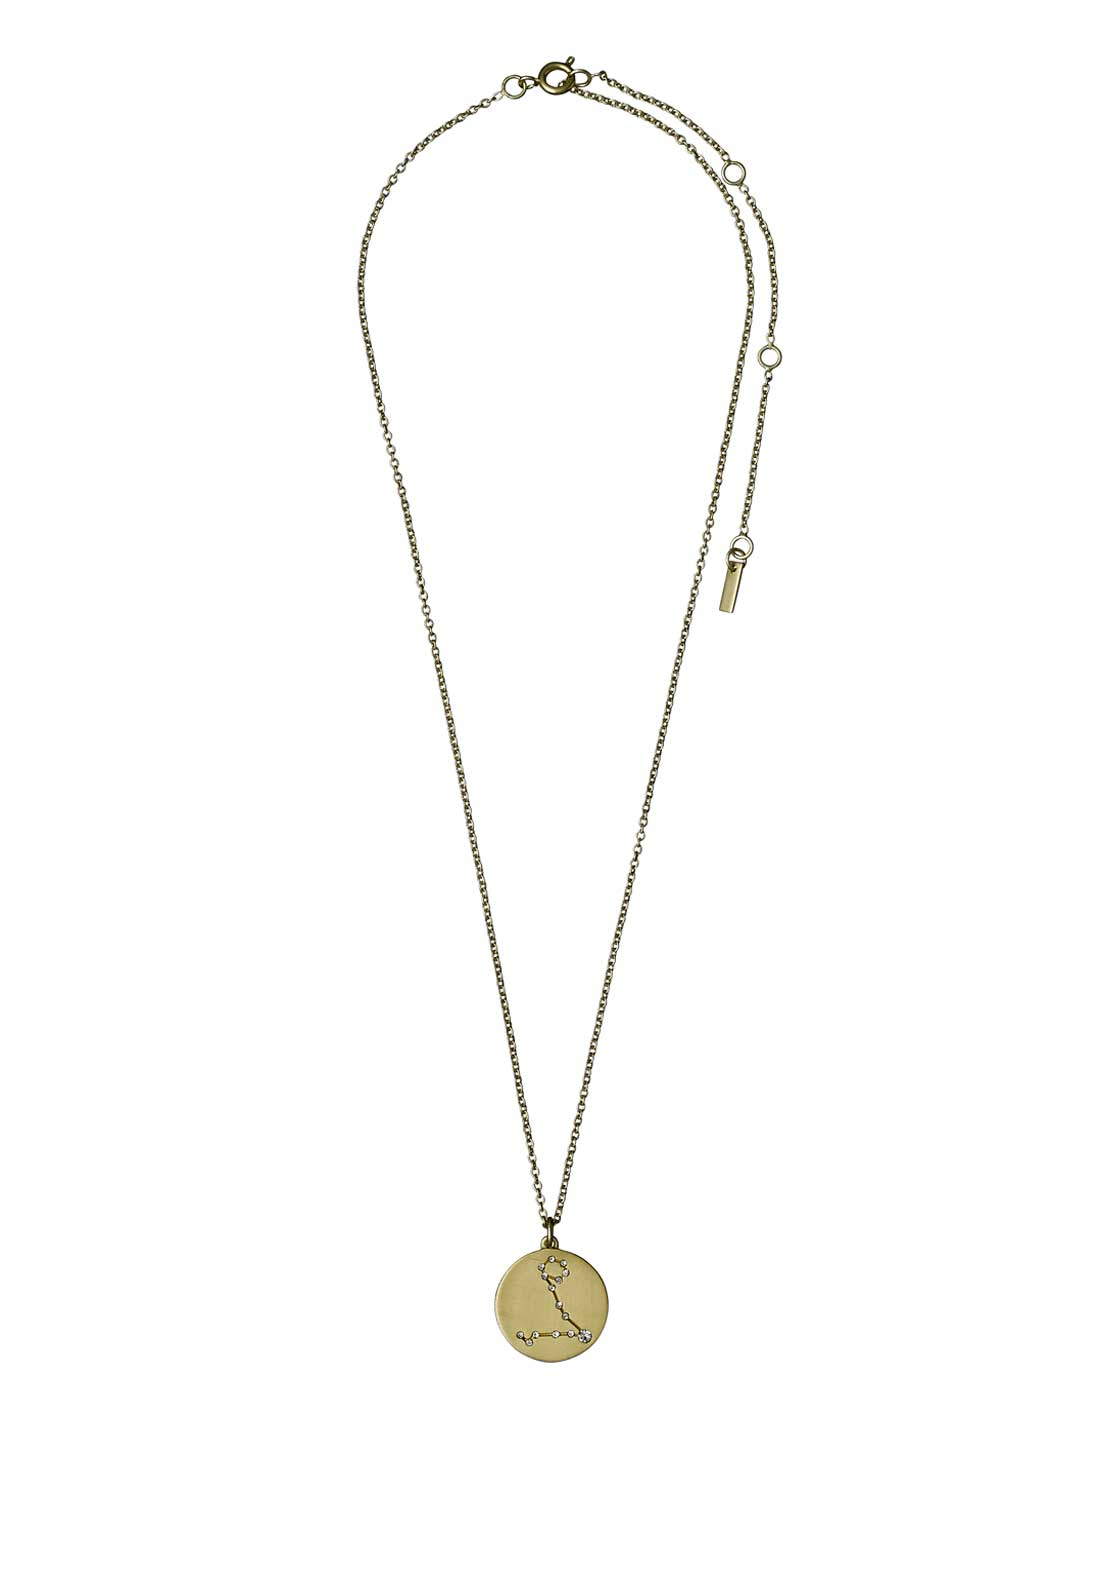 Pilgrim Pisces Zodiac Sign Necklace, Gold